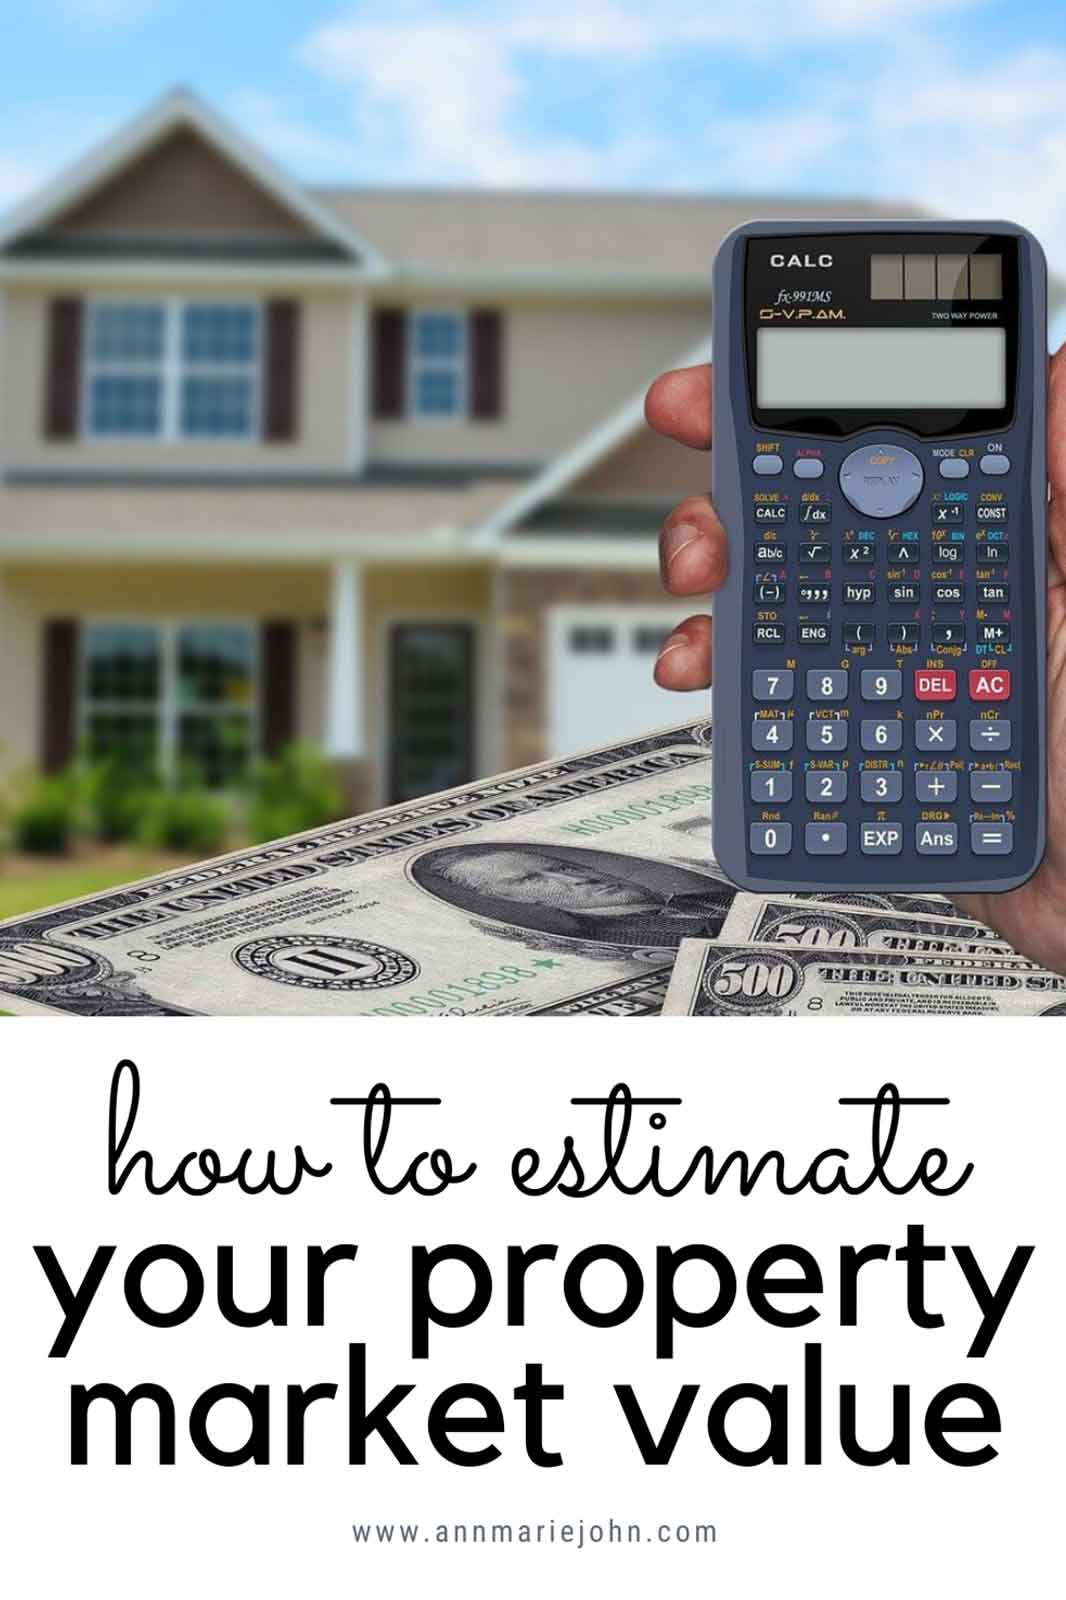 How to Come Up With a Good Estimate of Your Property's Market Value